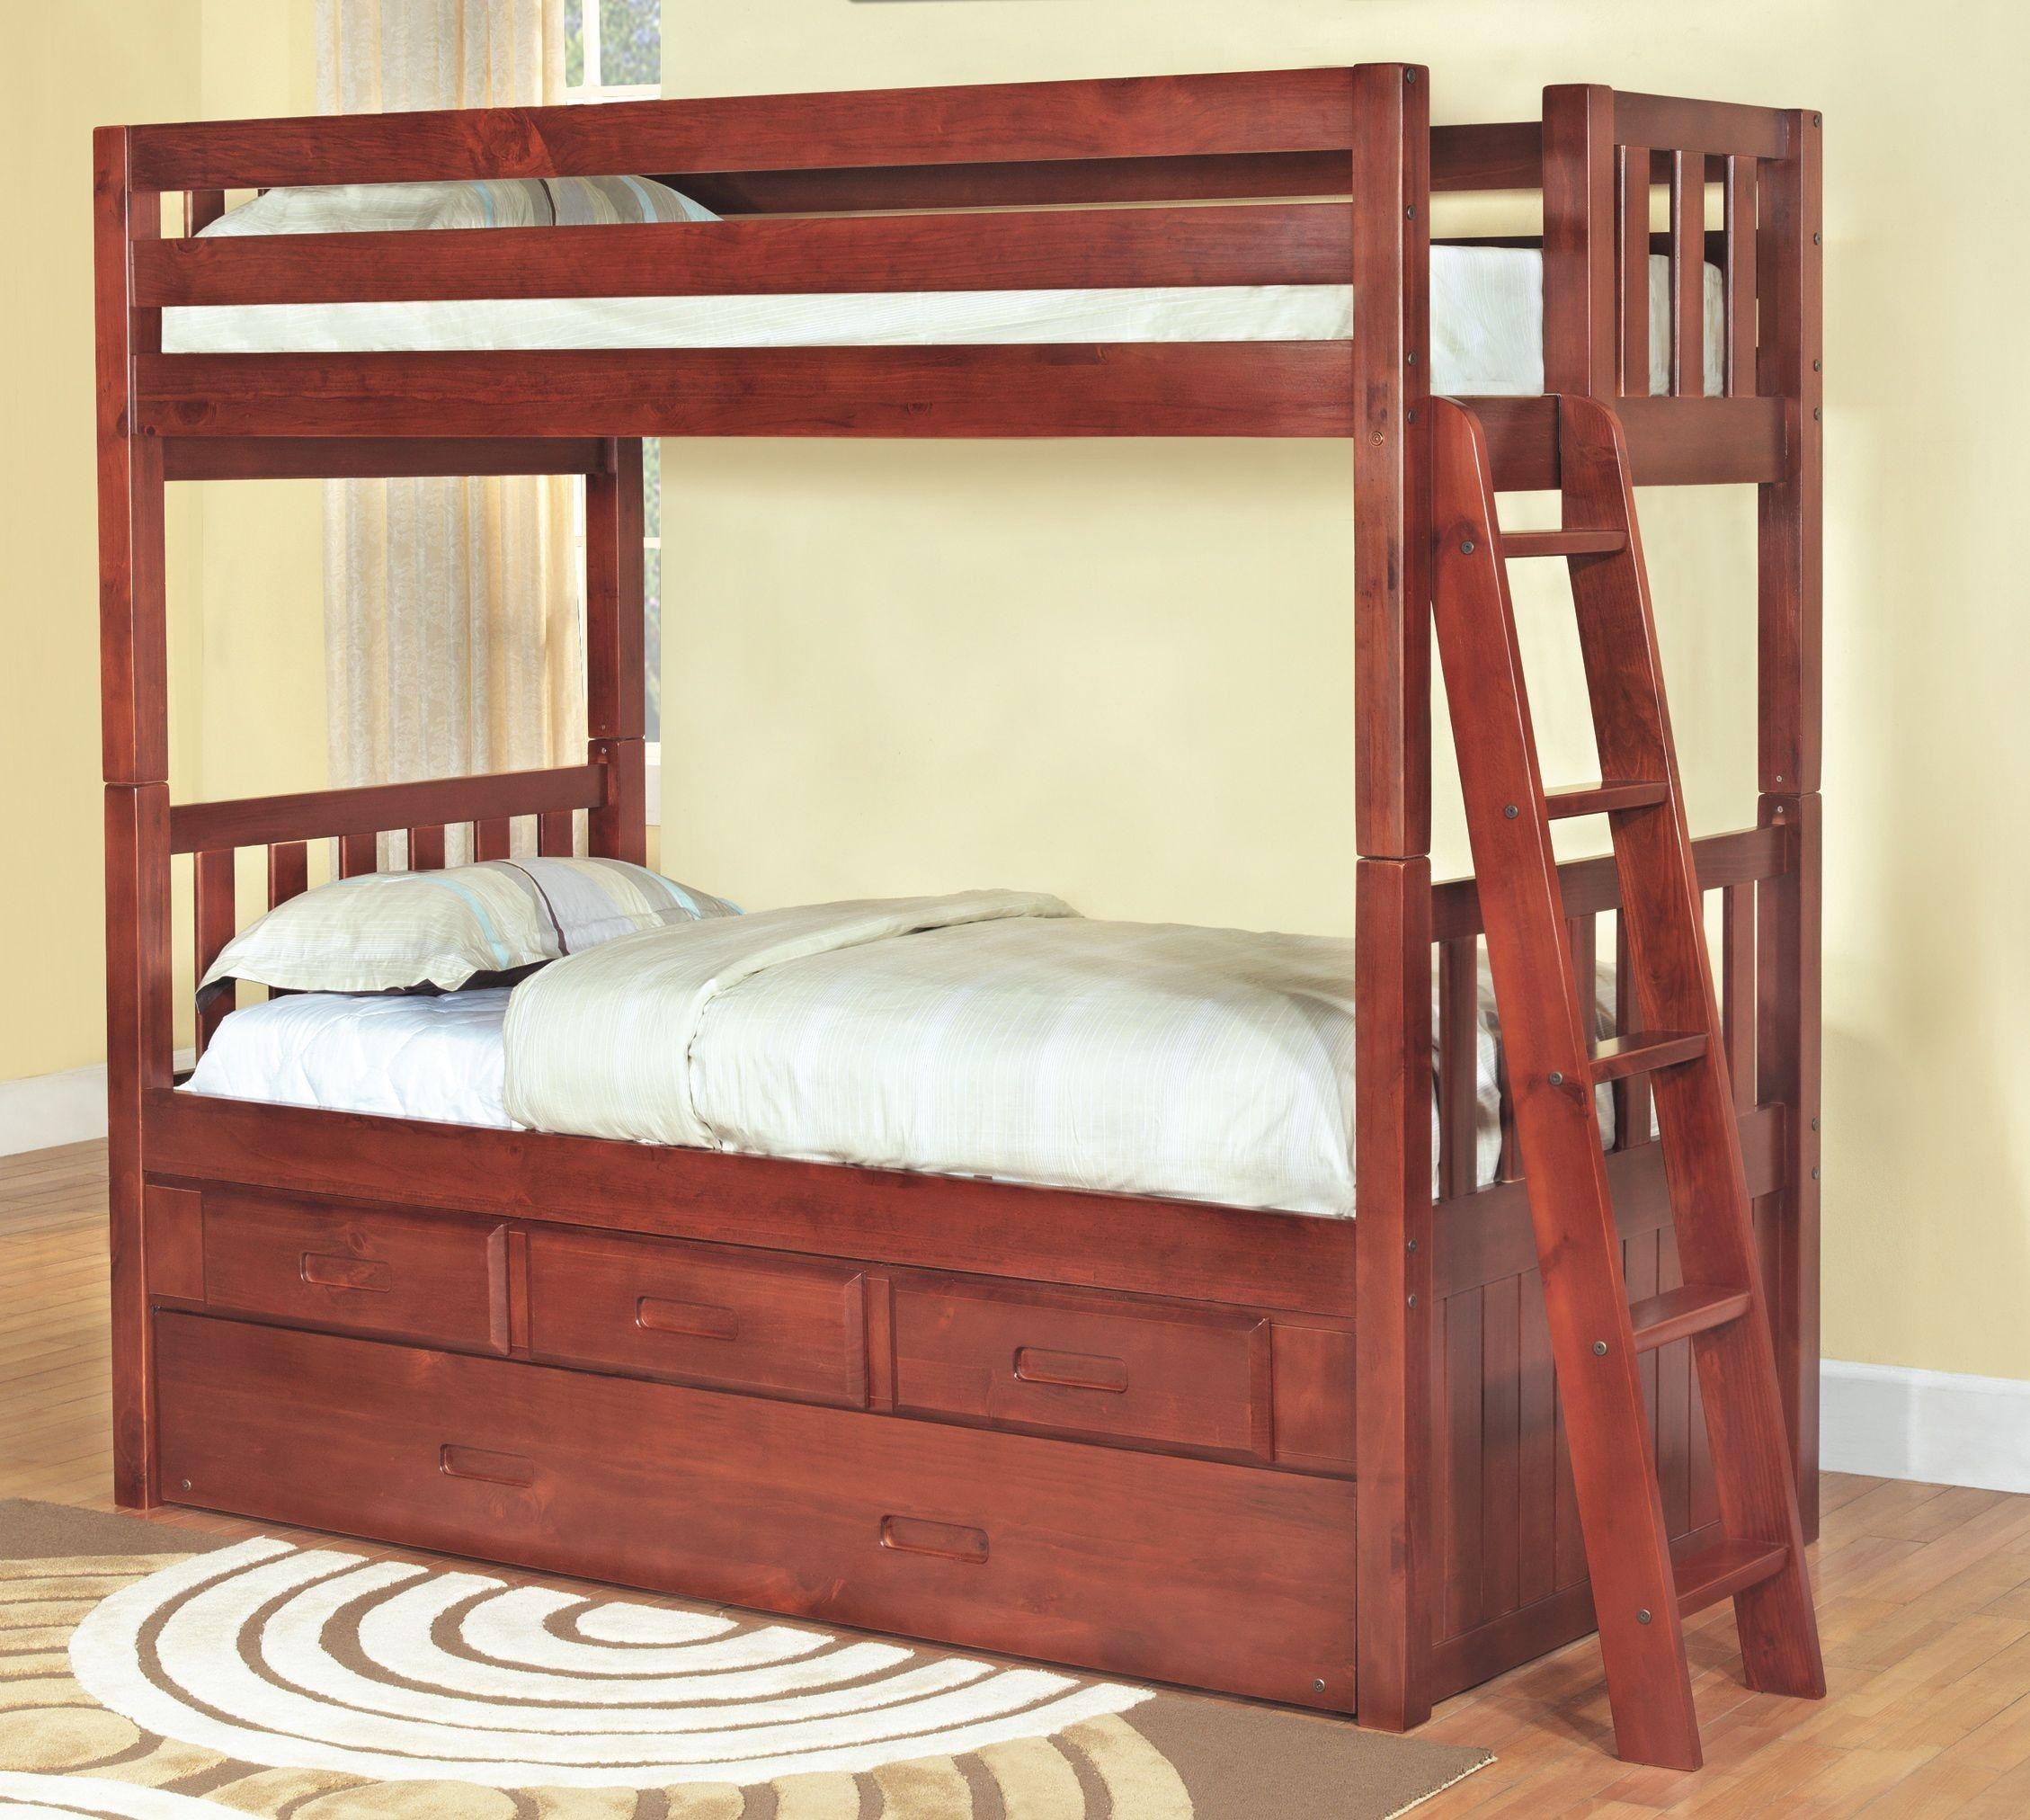 lovely sofa bunk bed convertible image-Fancy sofa Bunk Bed Convertible Design